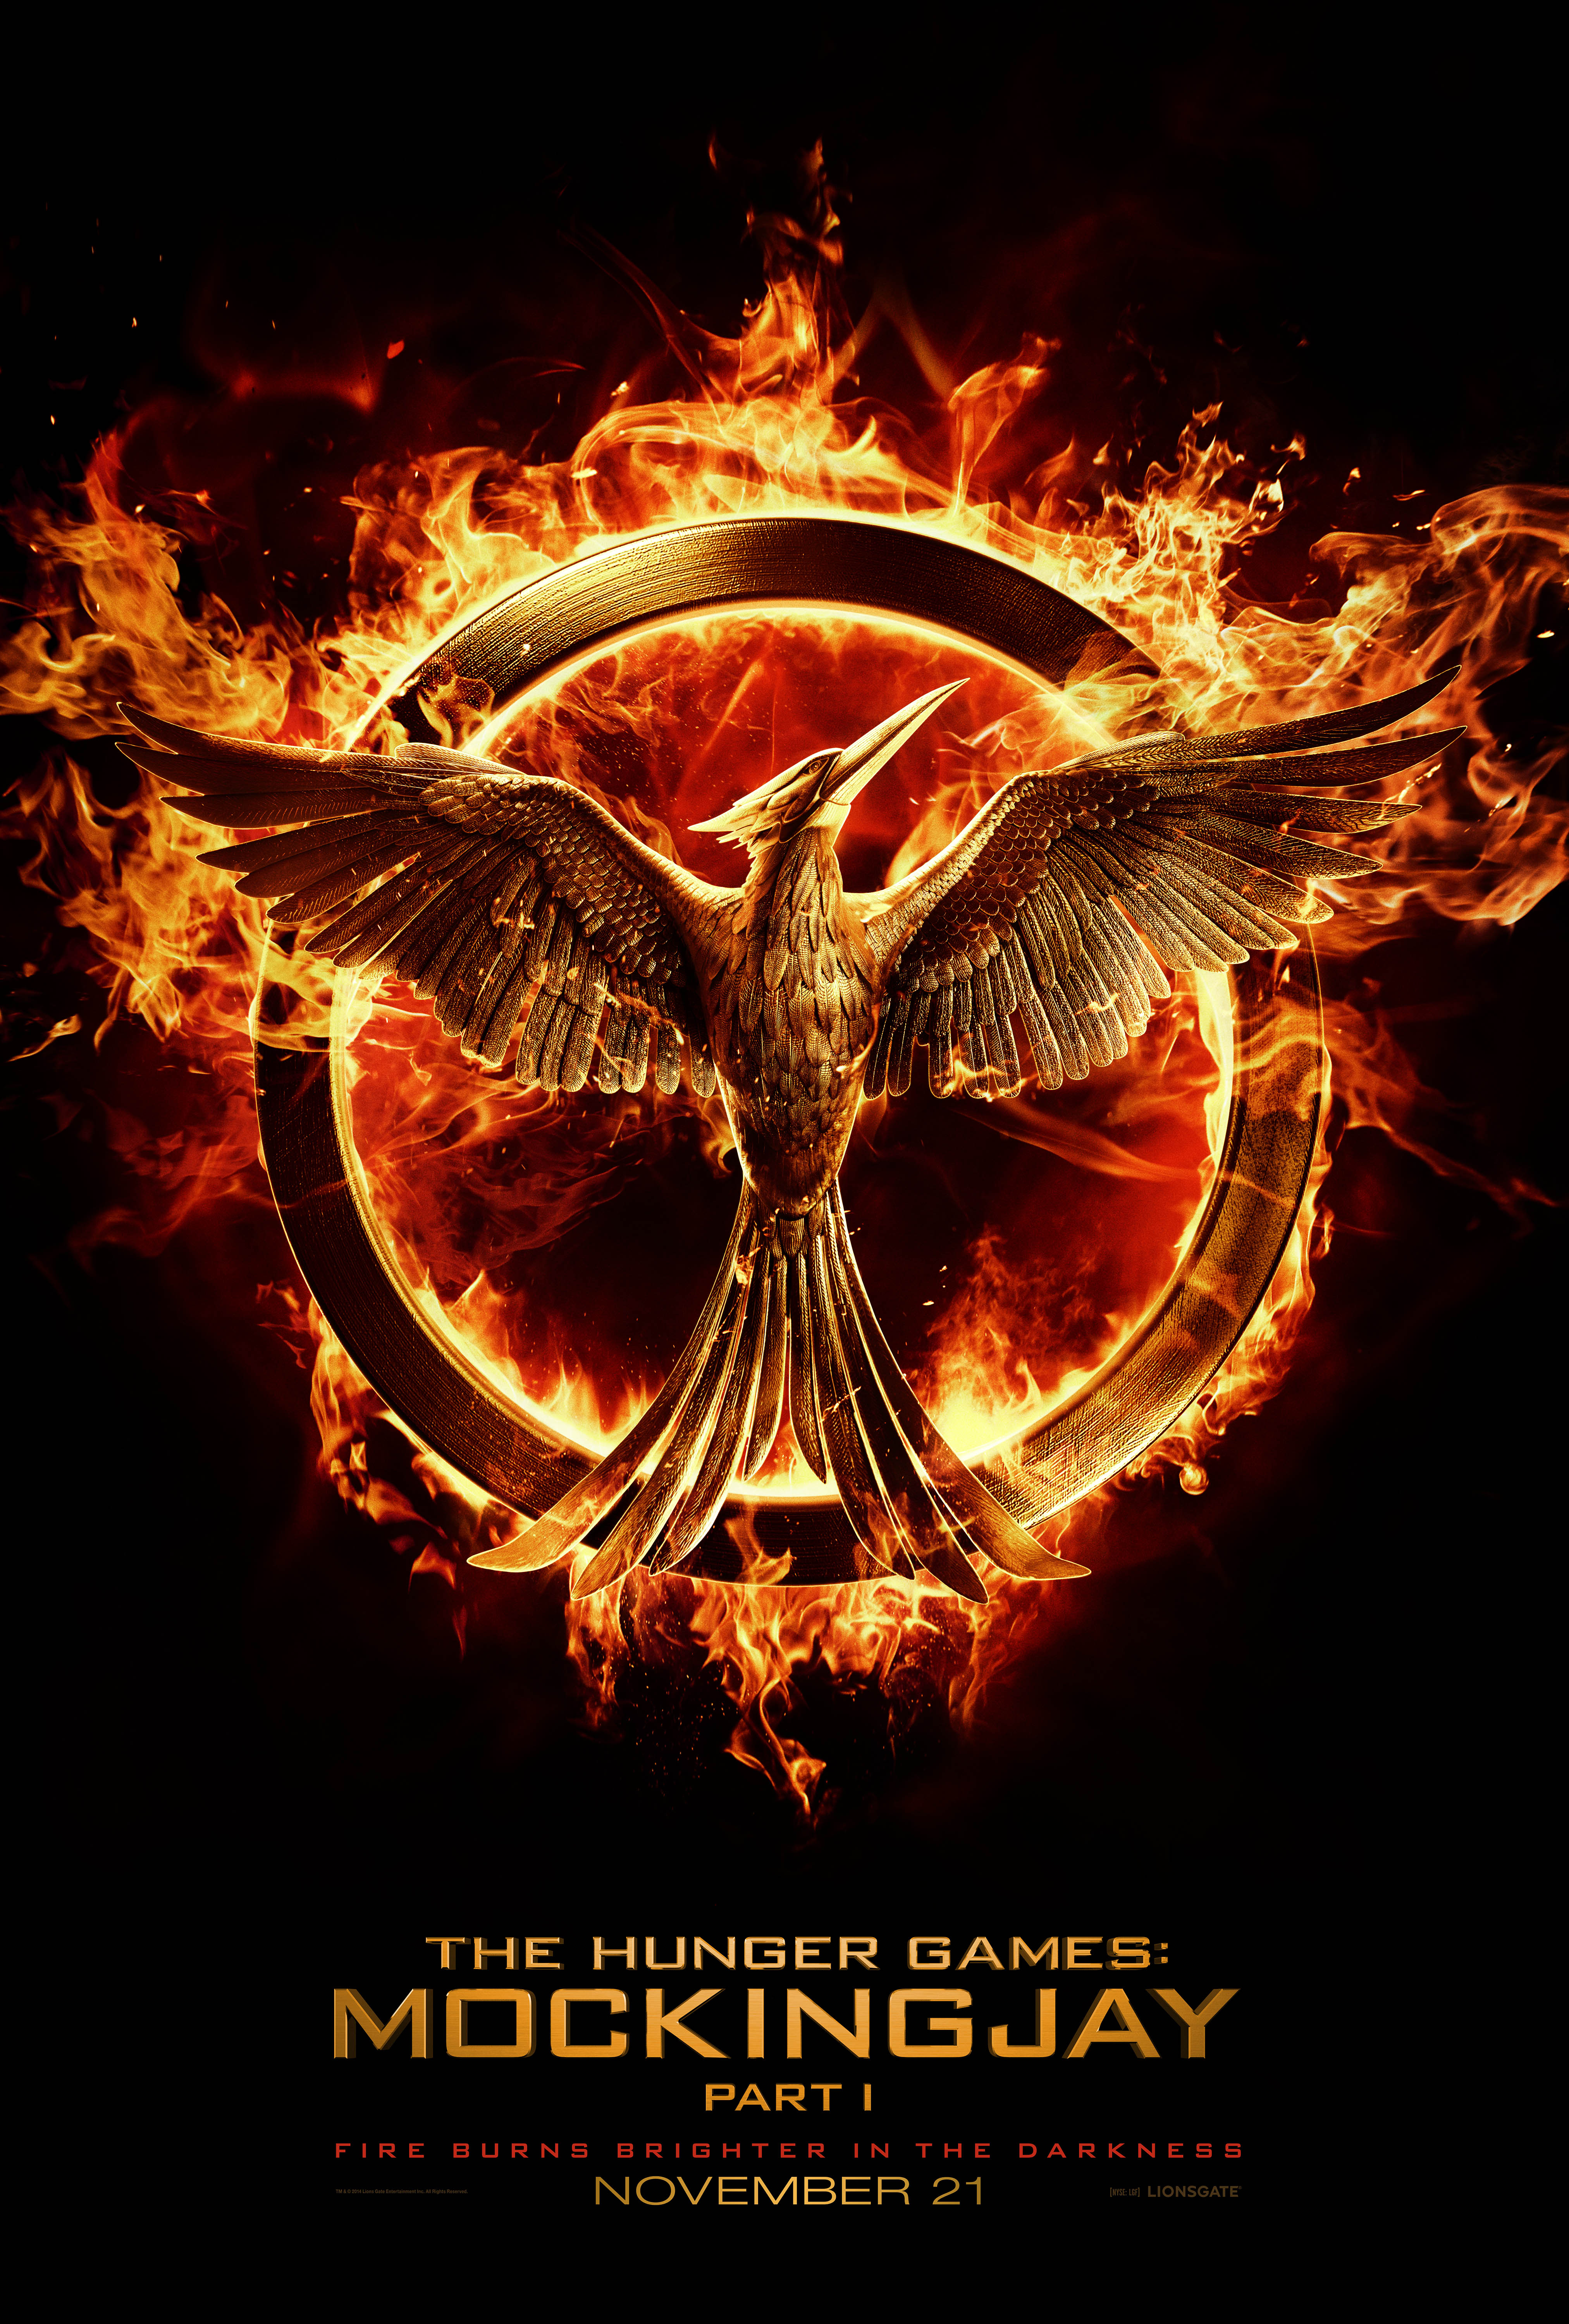 THE HUNGER GAMES MOCKINGJAY PART 1